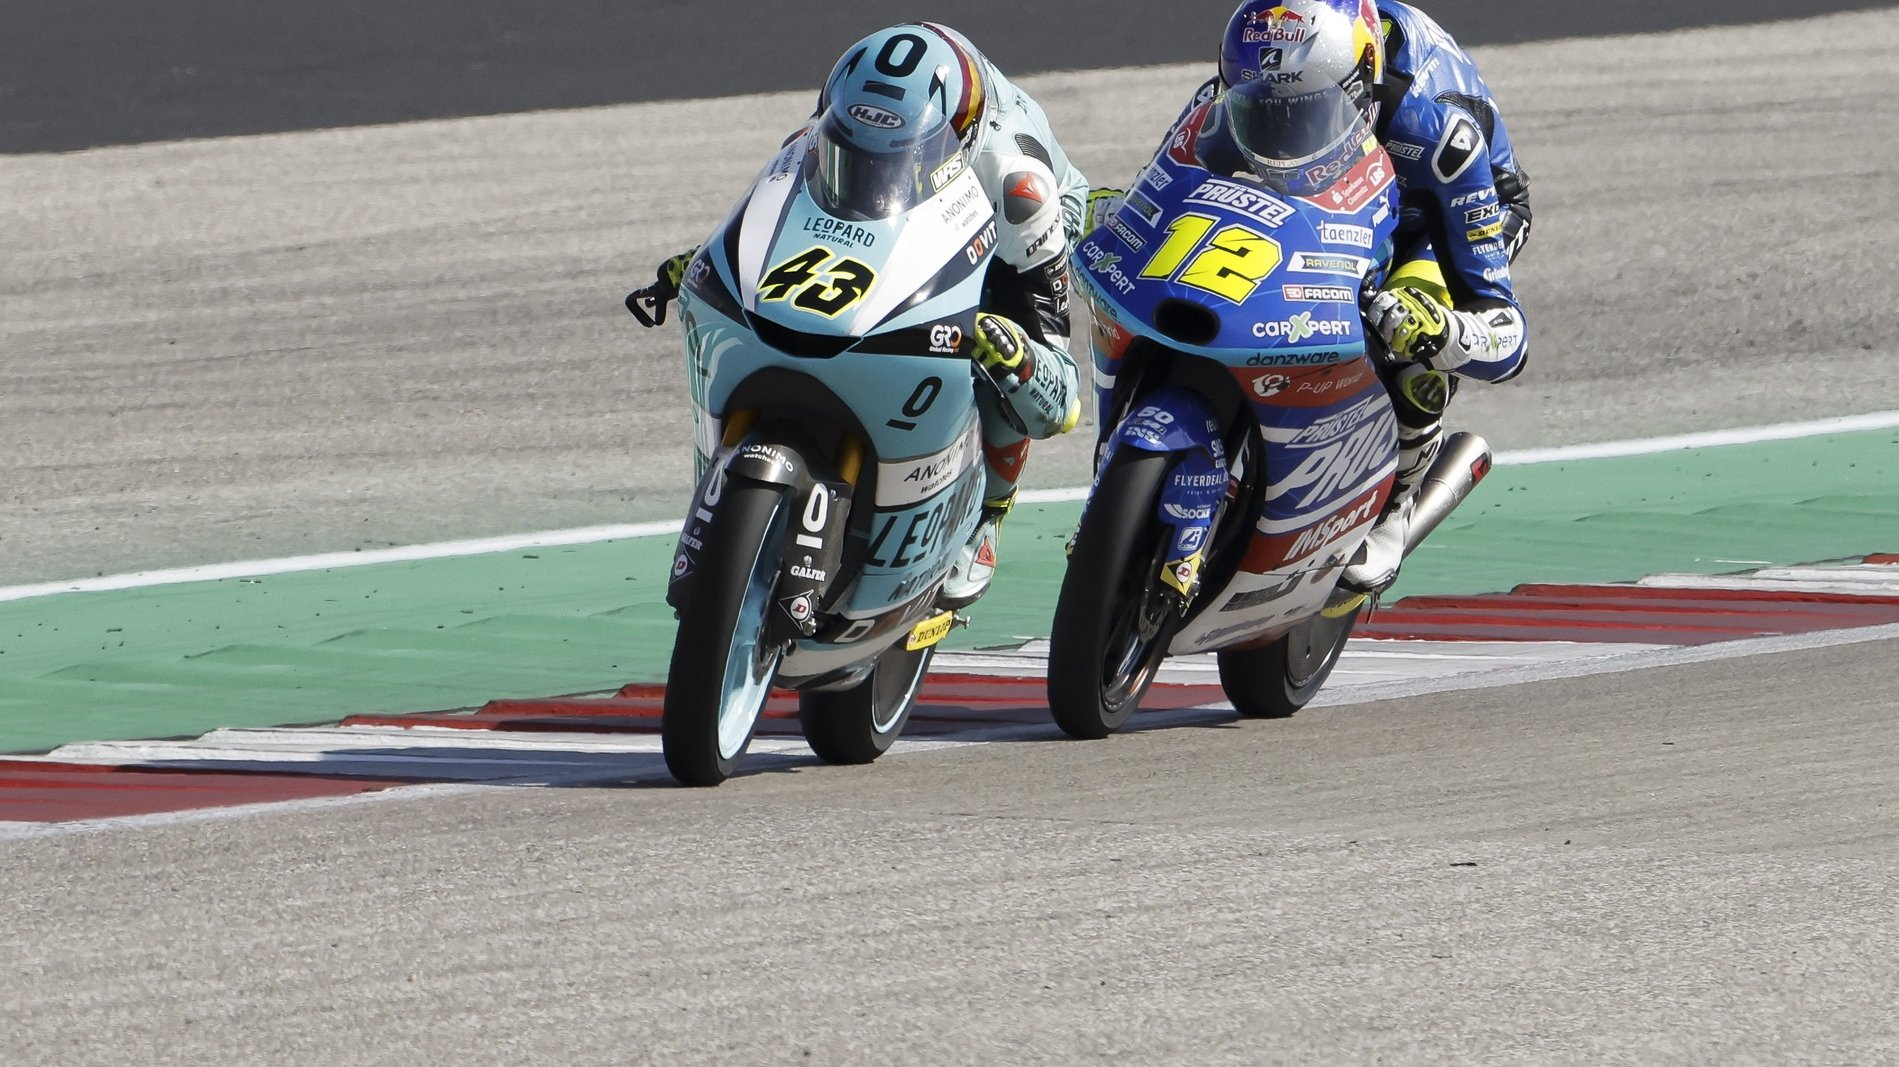 epa09503894 Spanish rider Xavier Artigas (L) of Leopard Racing and Czech rider Filip Salac (R) of Carxpert PruestelGP in action during the Moto3 race of the Motorcycling Grand Prix of the Americas at the Circuit Of The Americas in Austin, Texas, USA, 03 October 2021.  EPA/ERIK LESSER